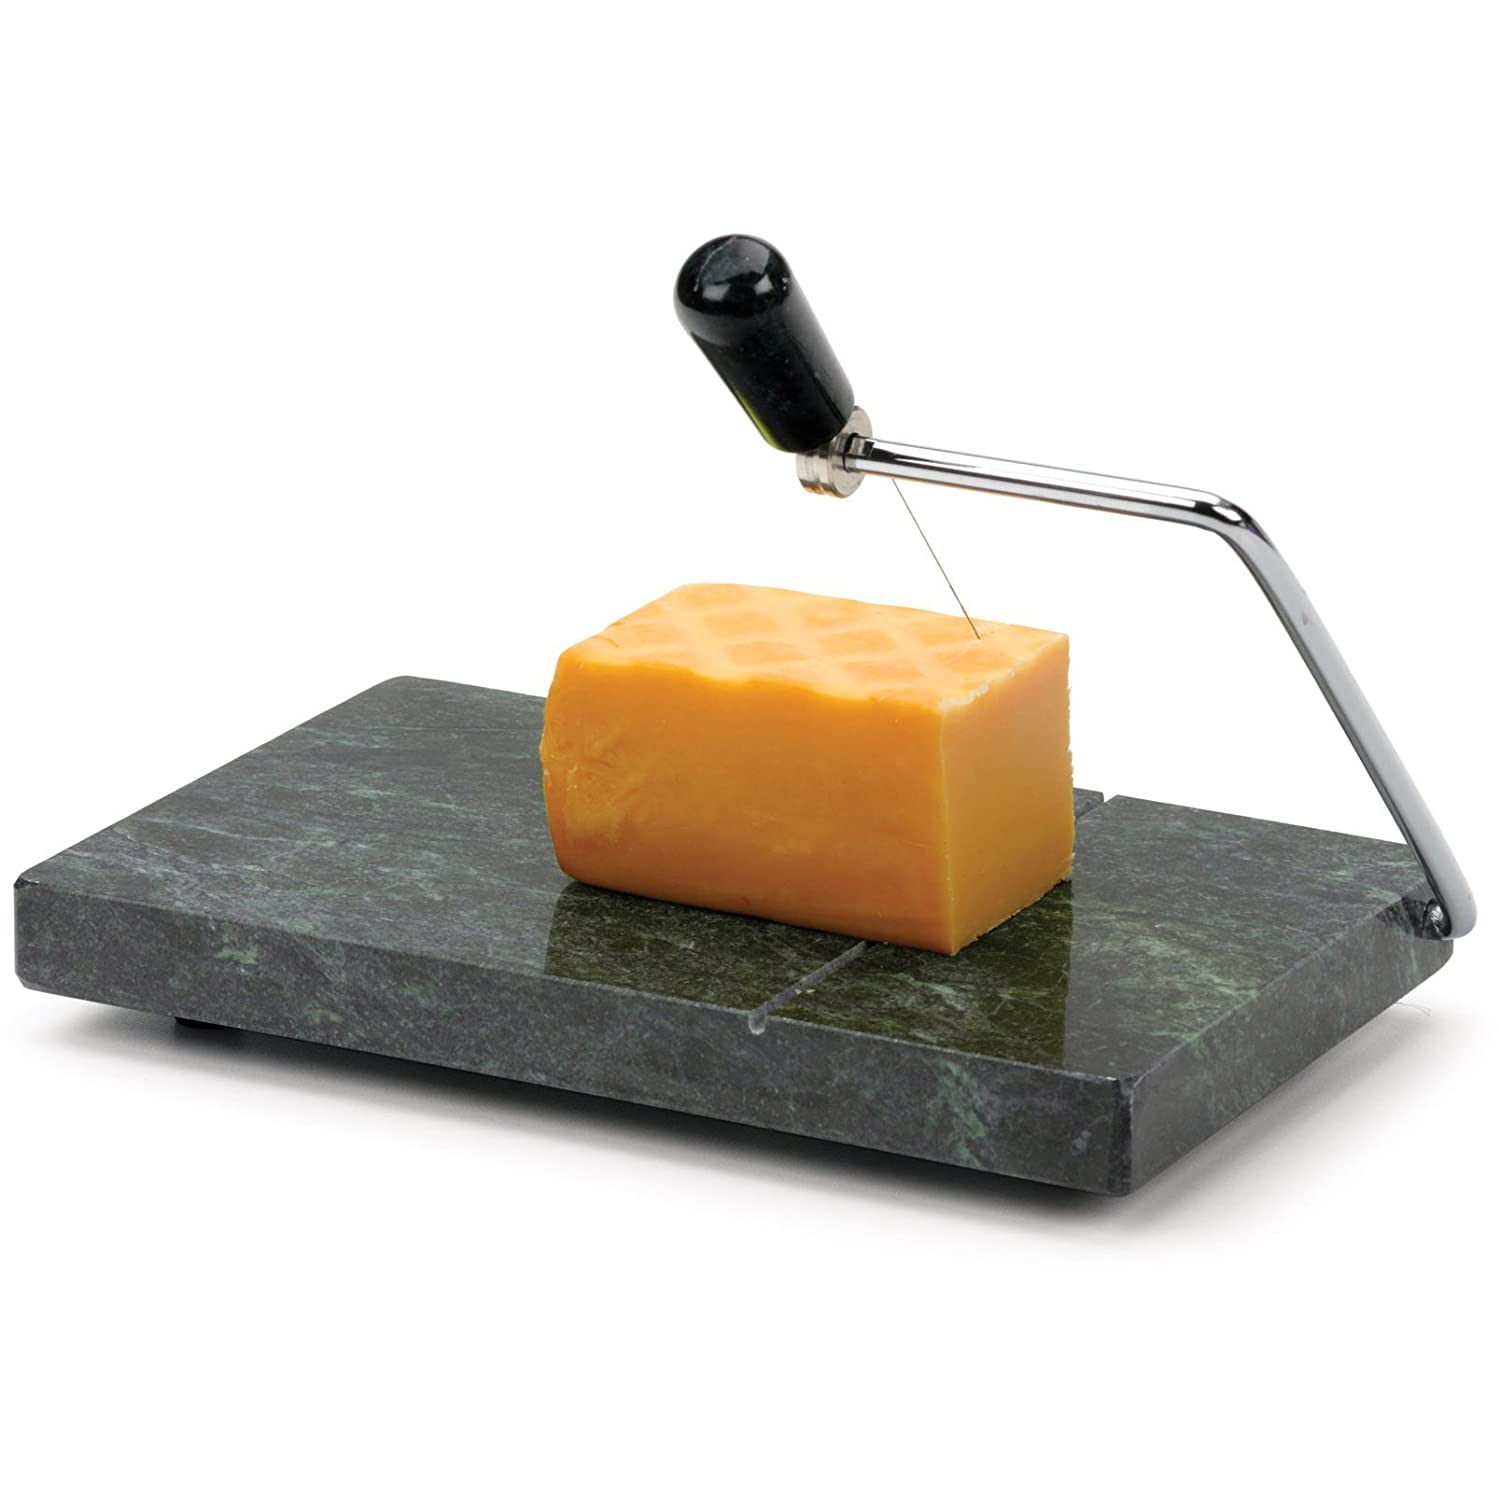 RSVP Marble Cheese Slicer - Green GCS